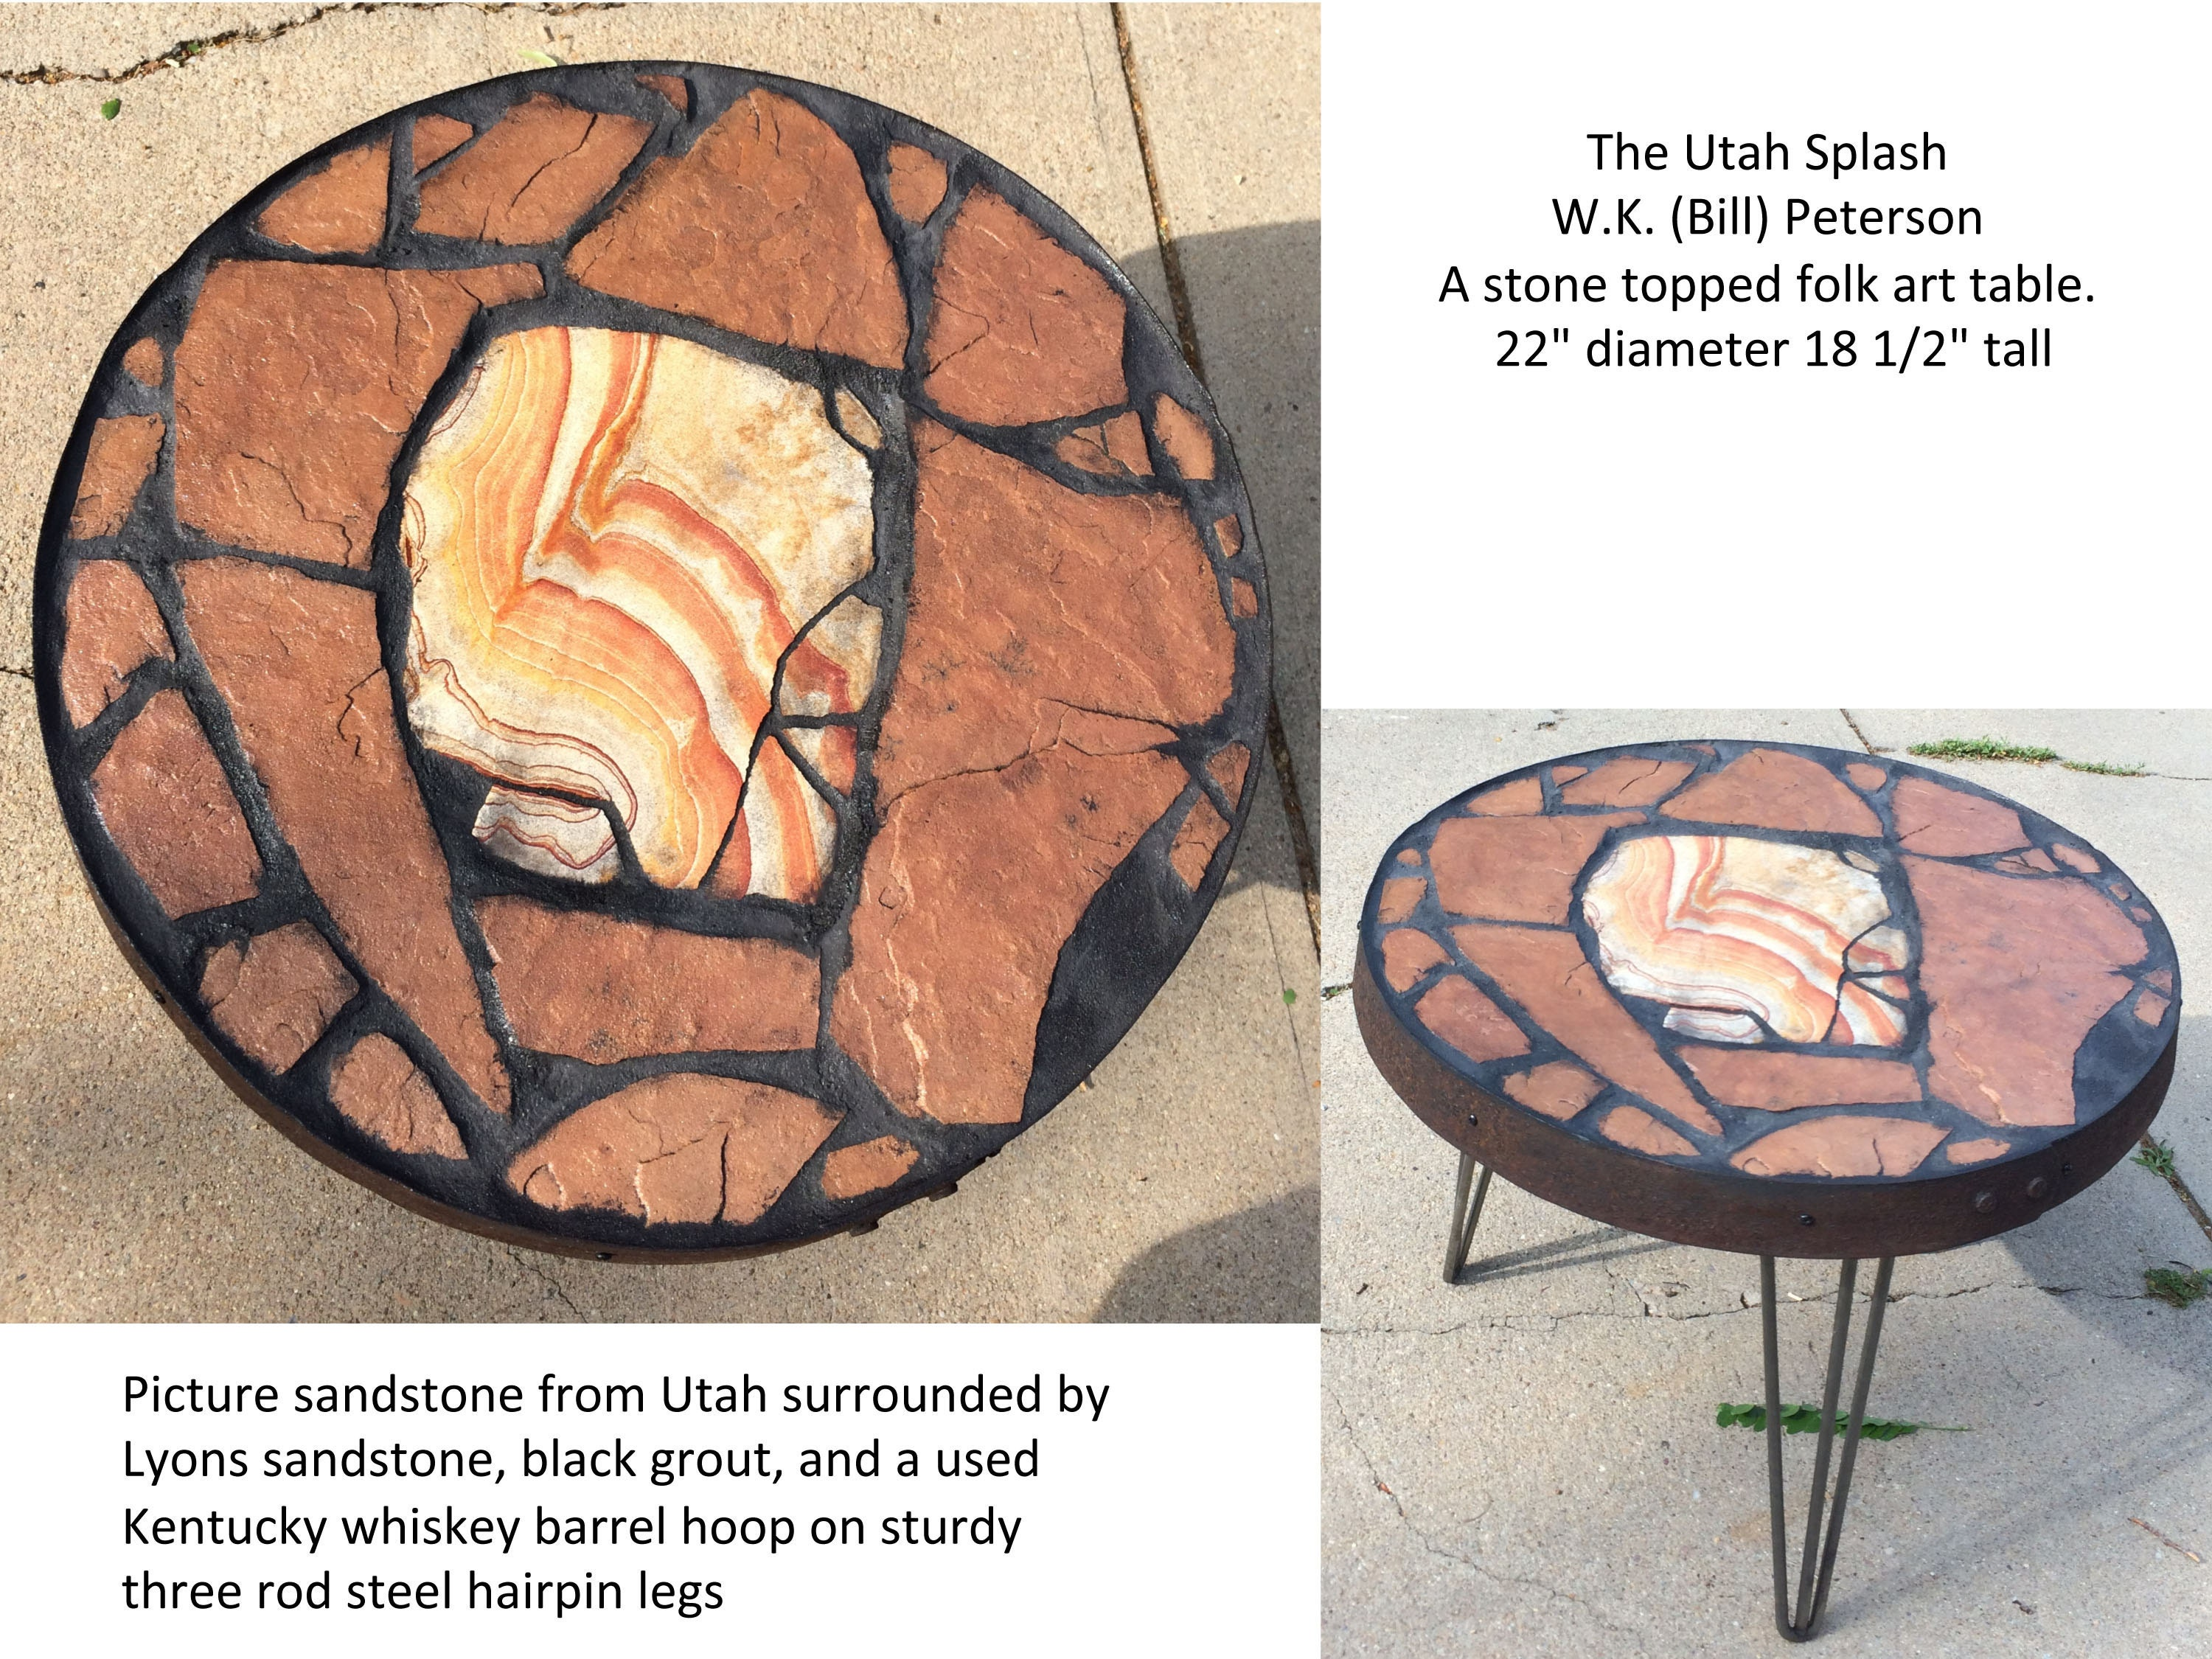 Finished table showing the hairpin legs and rim made from a used whiskey barrel hoop.